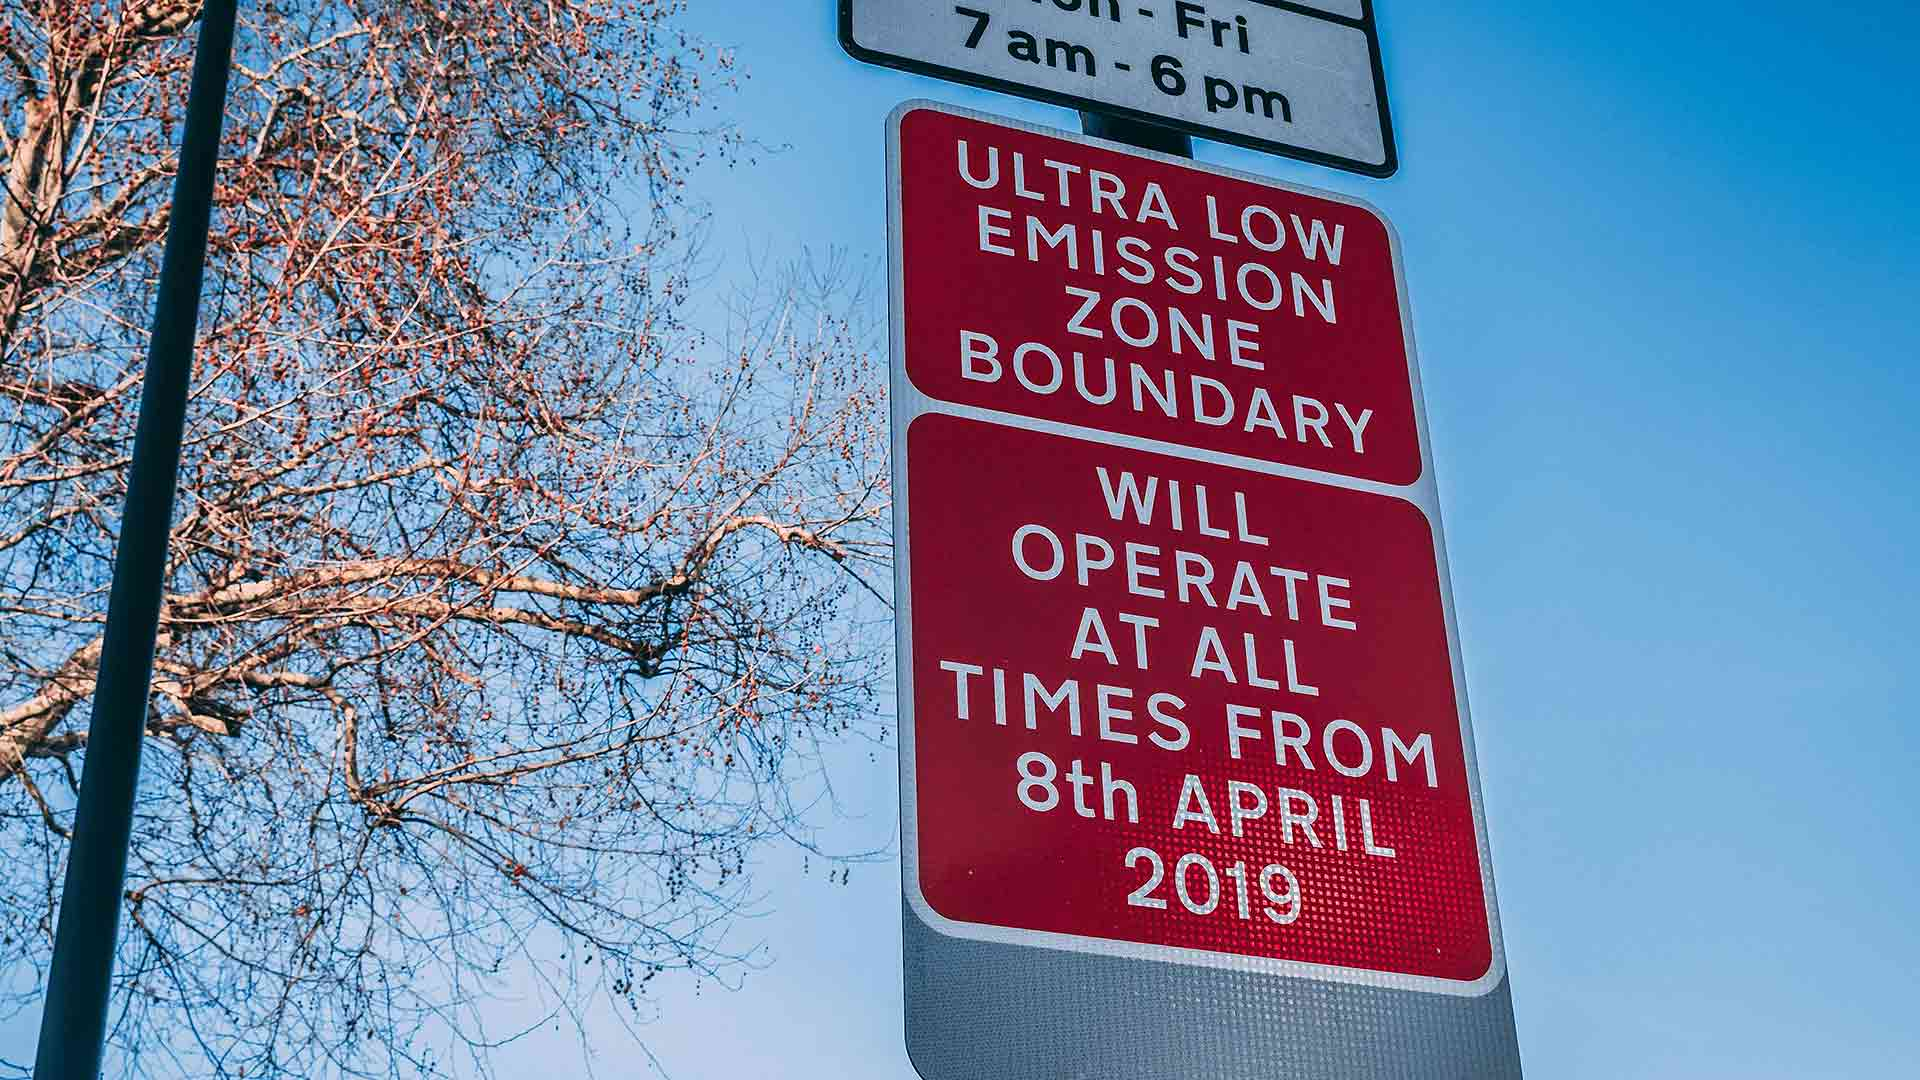 London Ultra Low Emission Zone roadsign